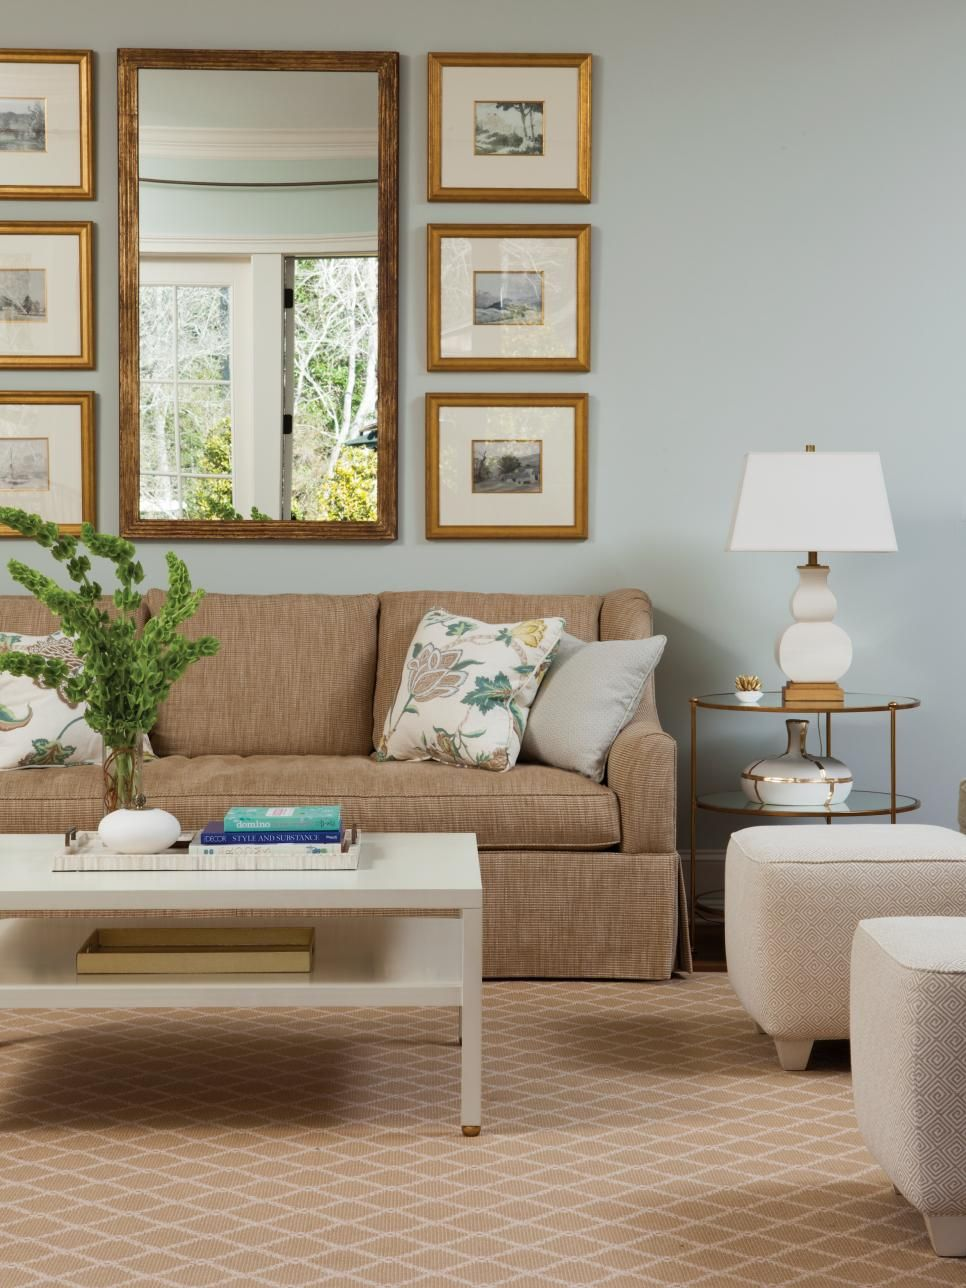 Light Blue Walls Are Paired With Neutral Furniture And